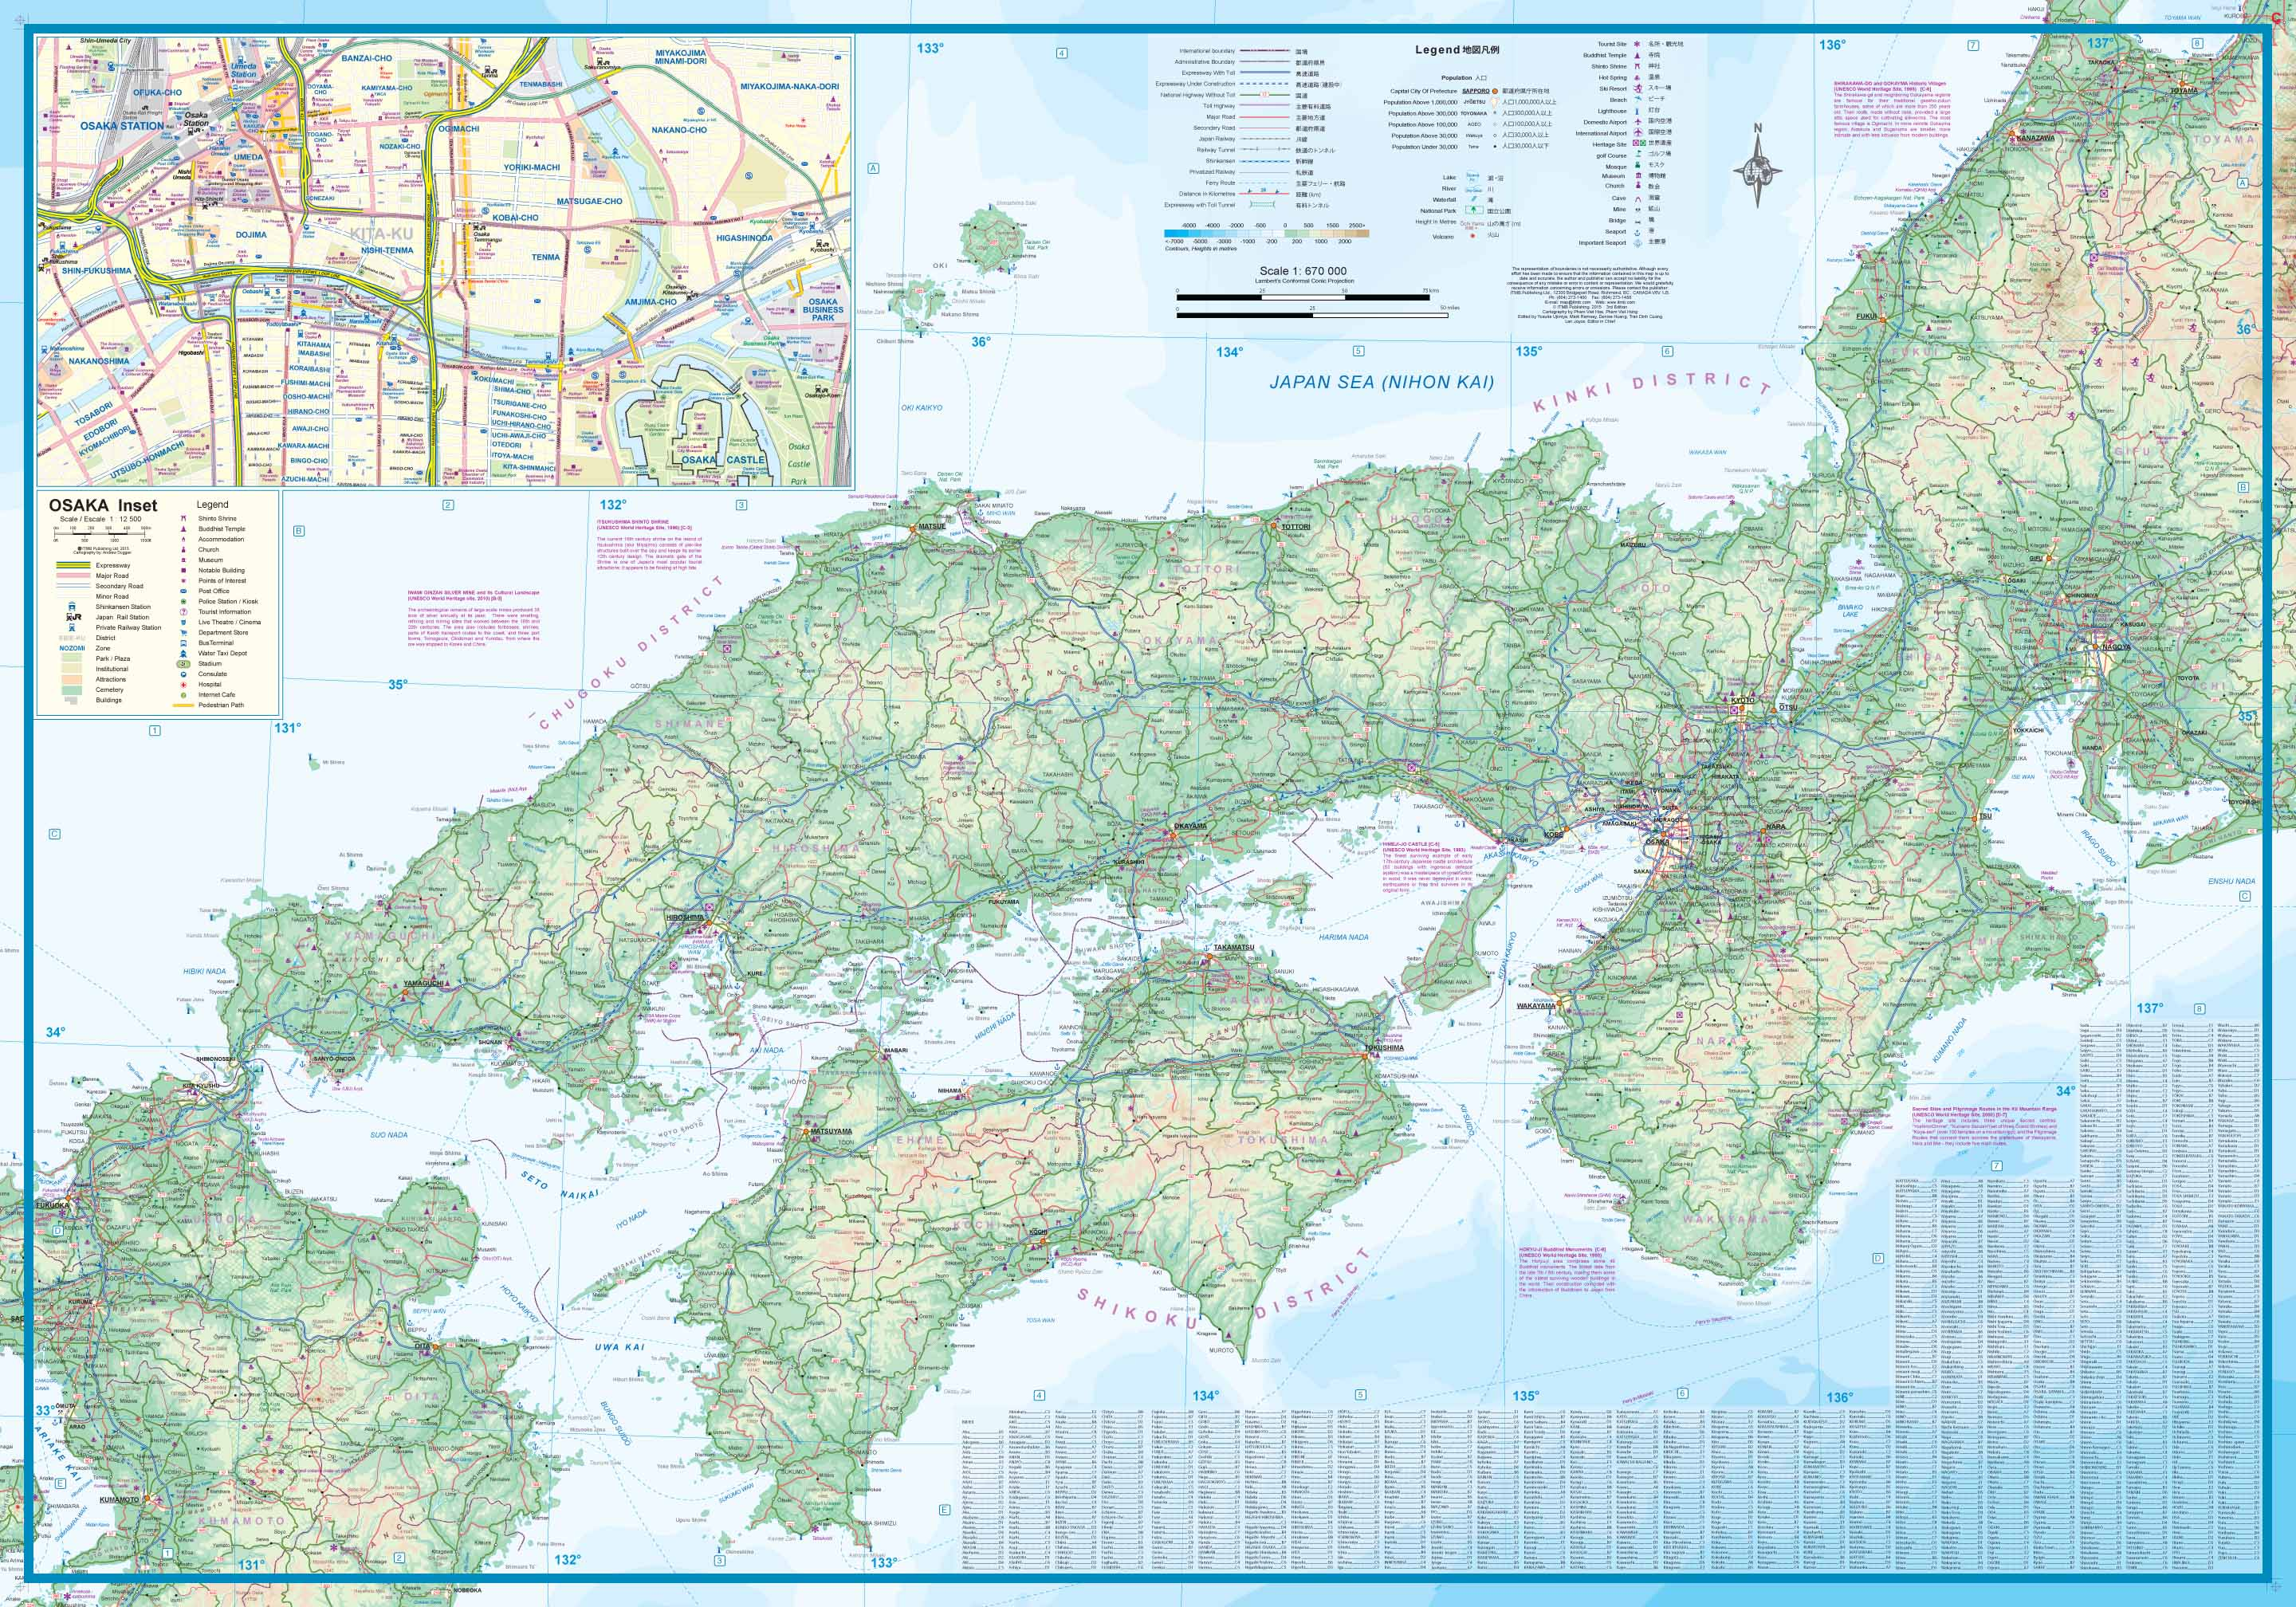 Maps For Travel City Maps Road Maps Guides Globes Topographic - Japan map legend